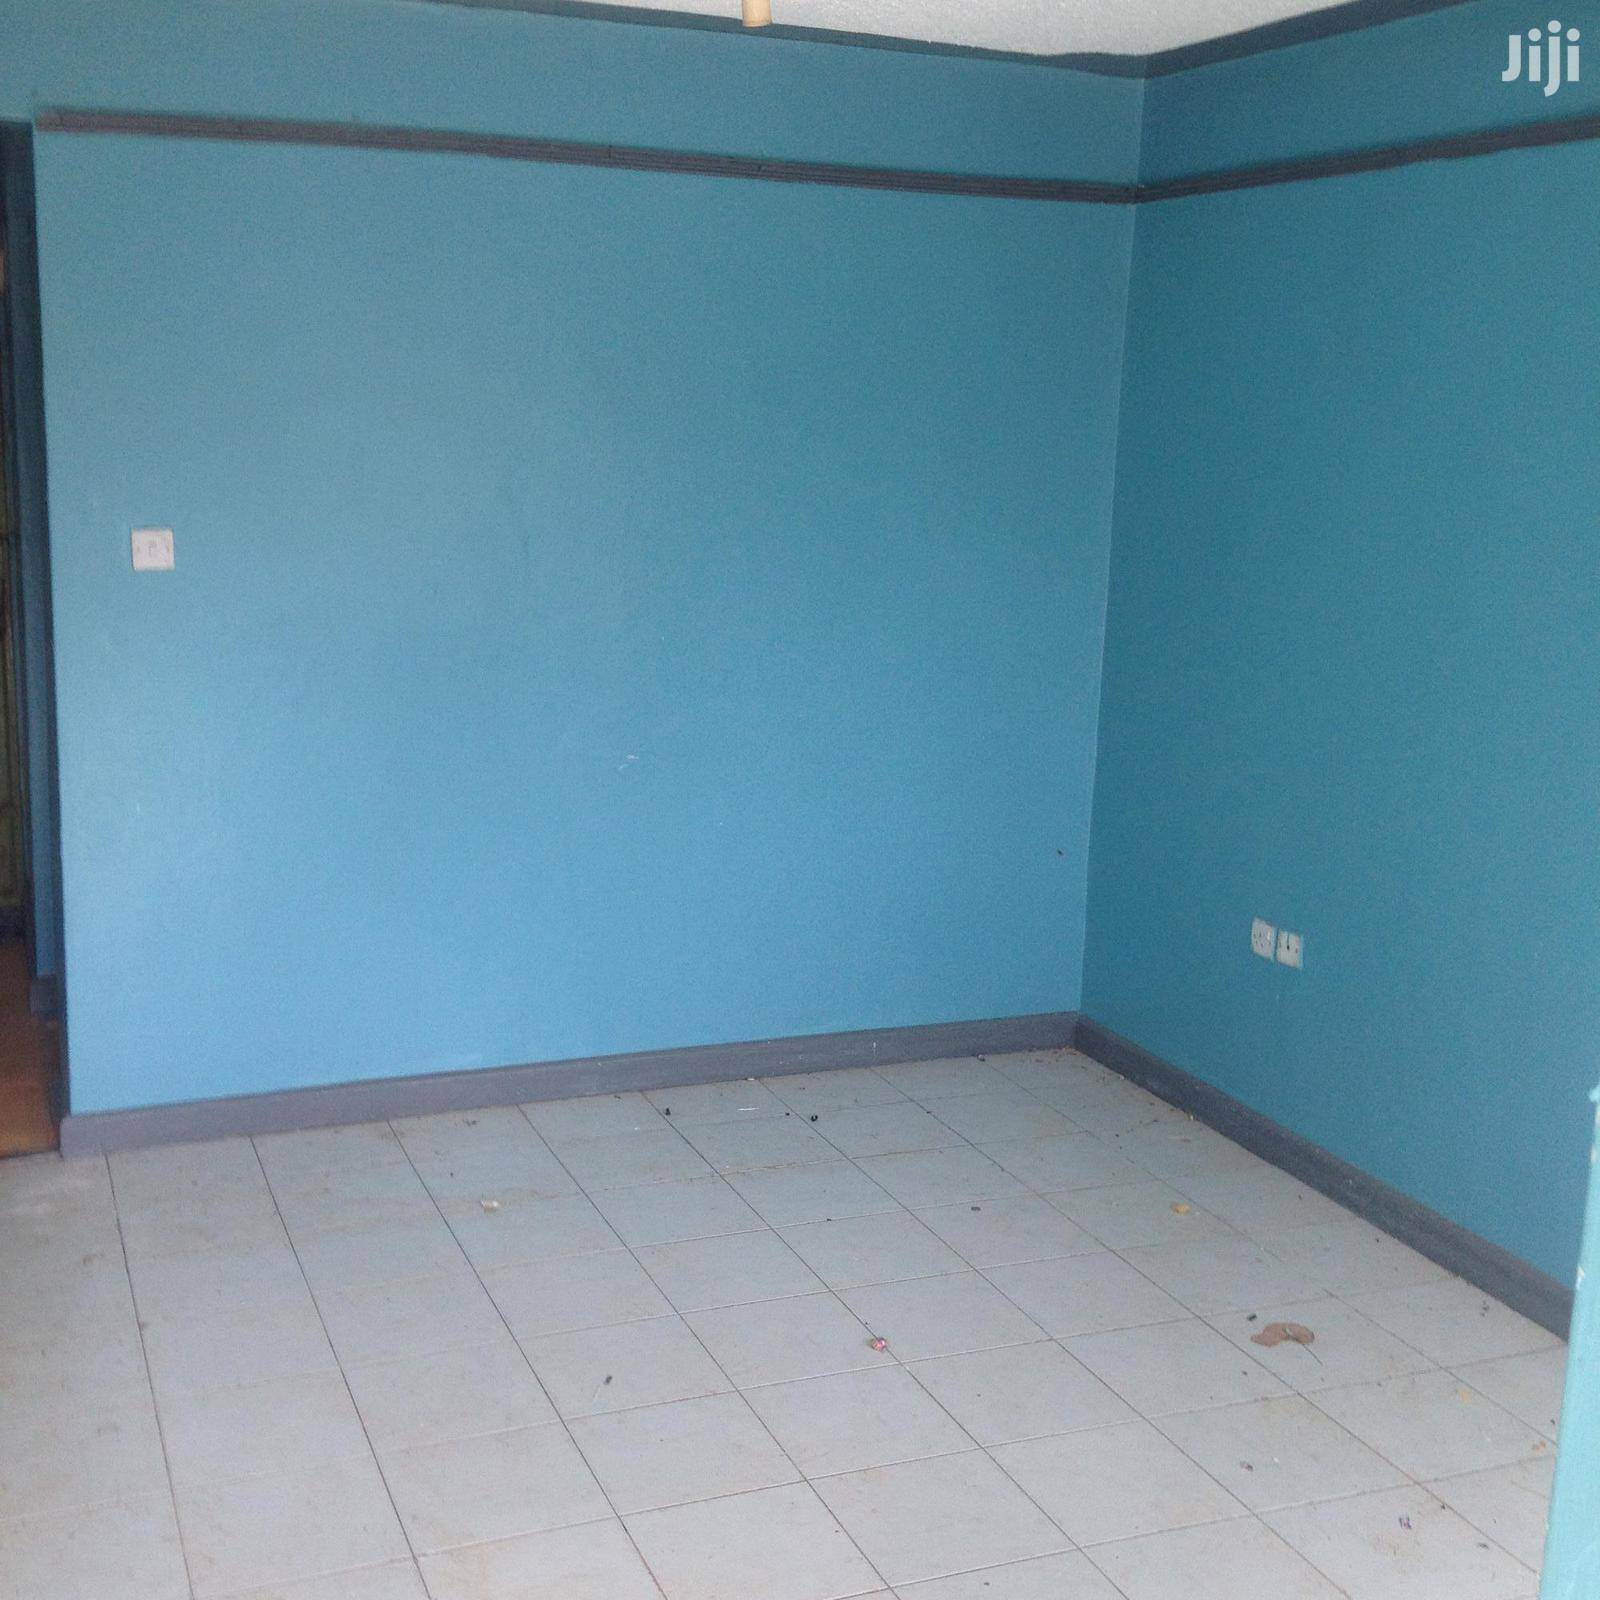 Spacious One Bedroom To Let Located In Ongata Rongai | Houses & Apartments For Rent for sale in Ongata Rongai, Kajiado, Kenya